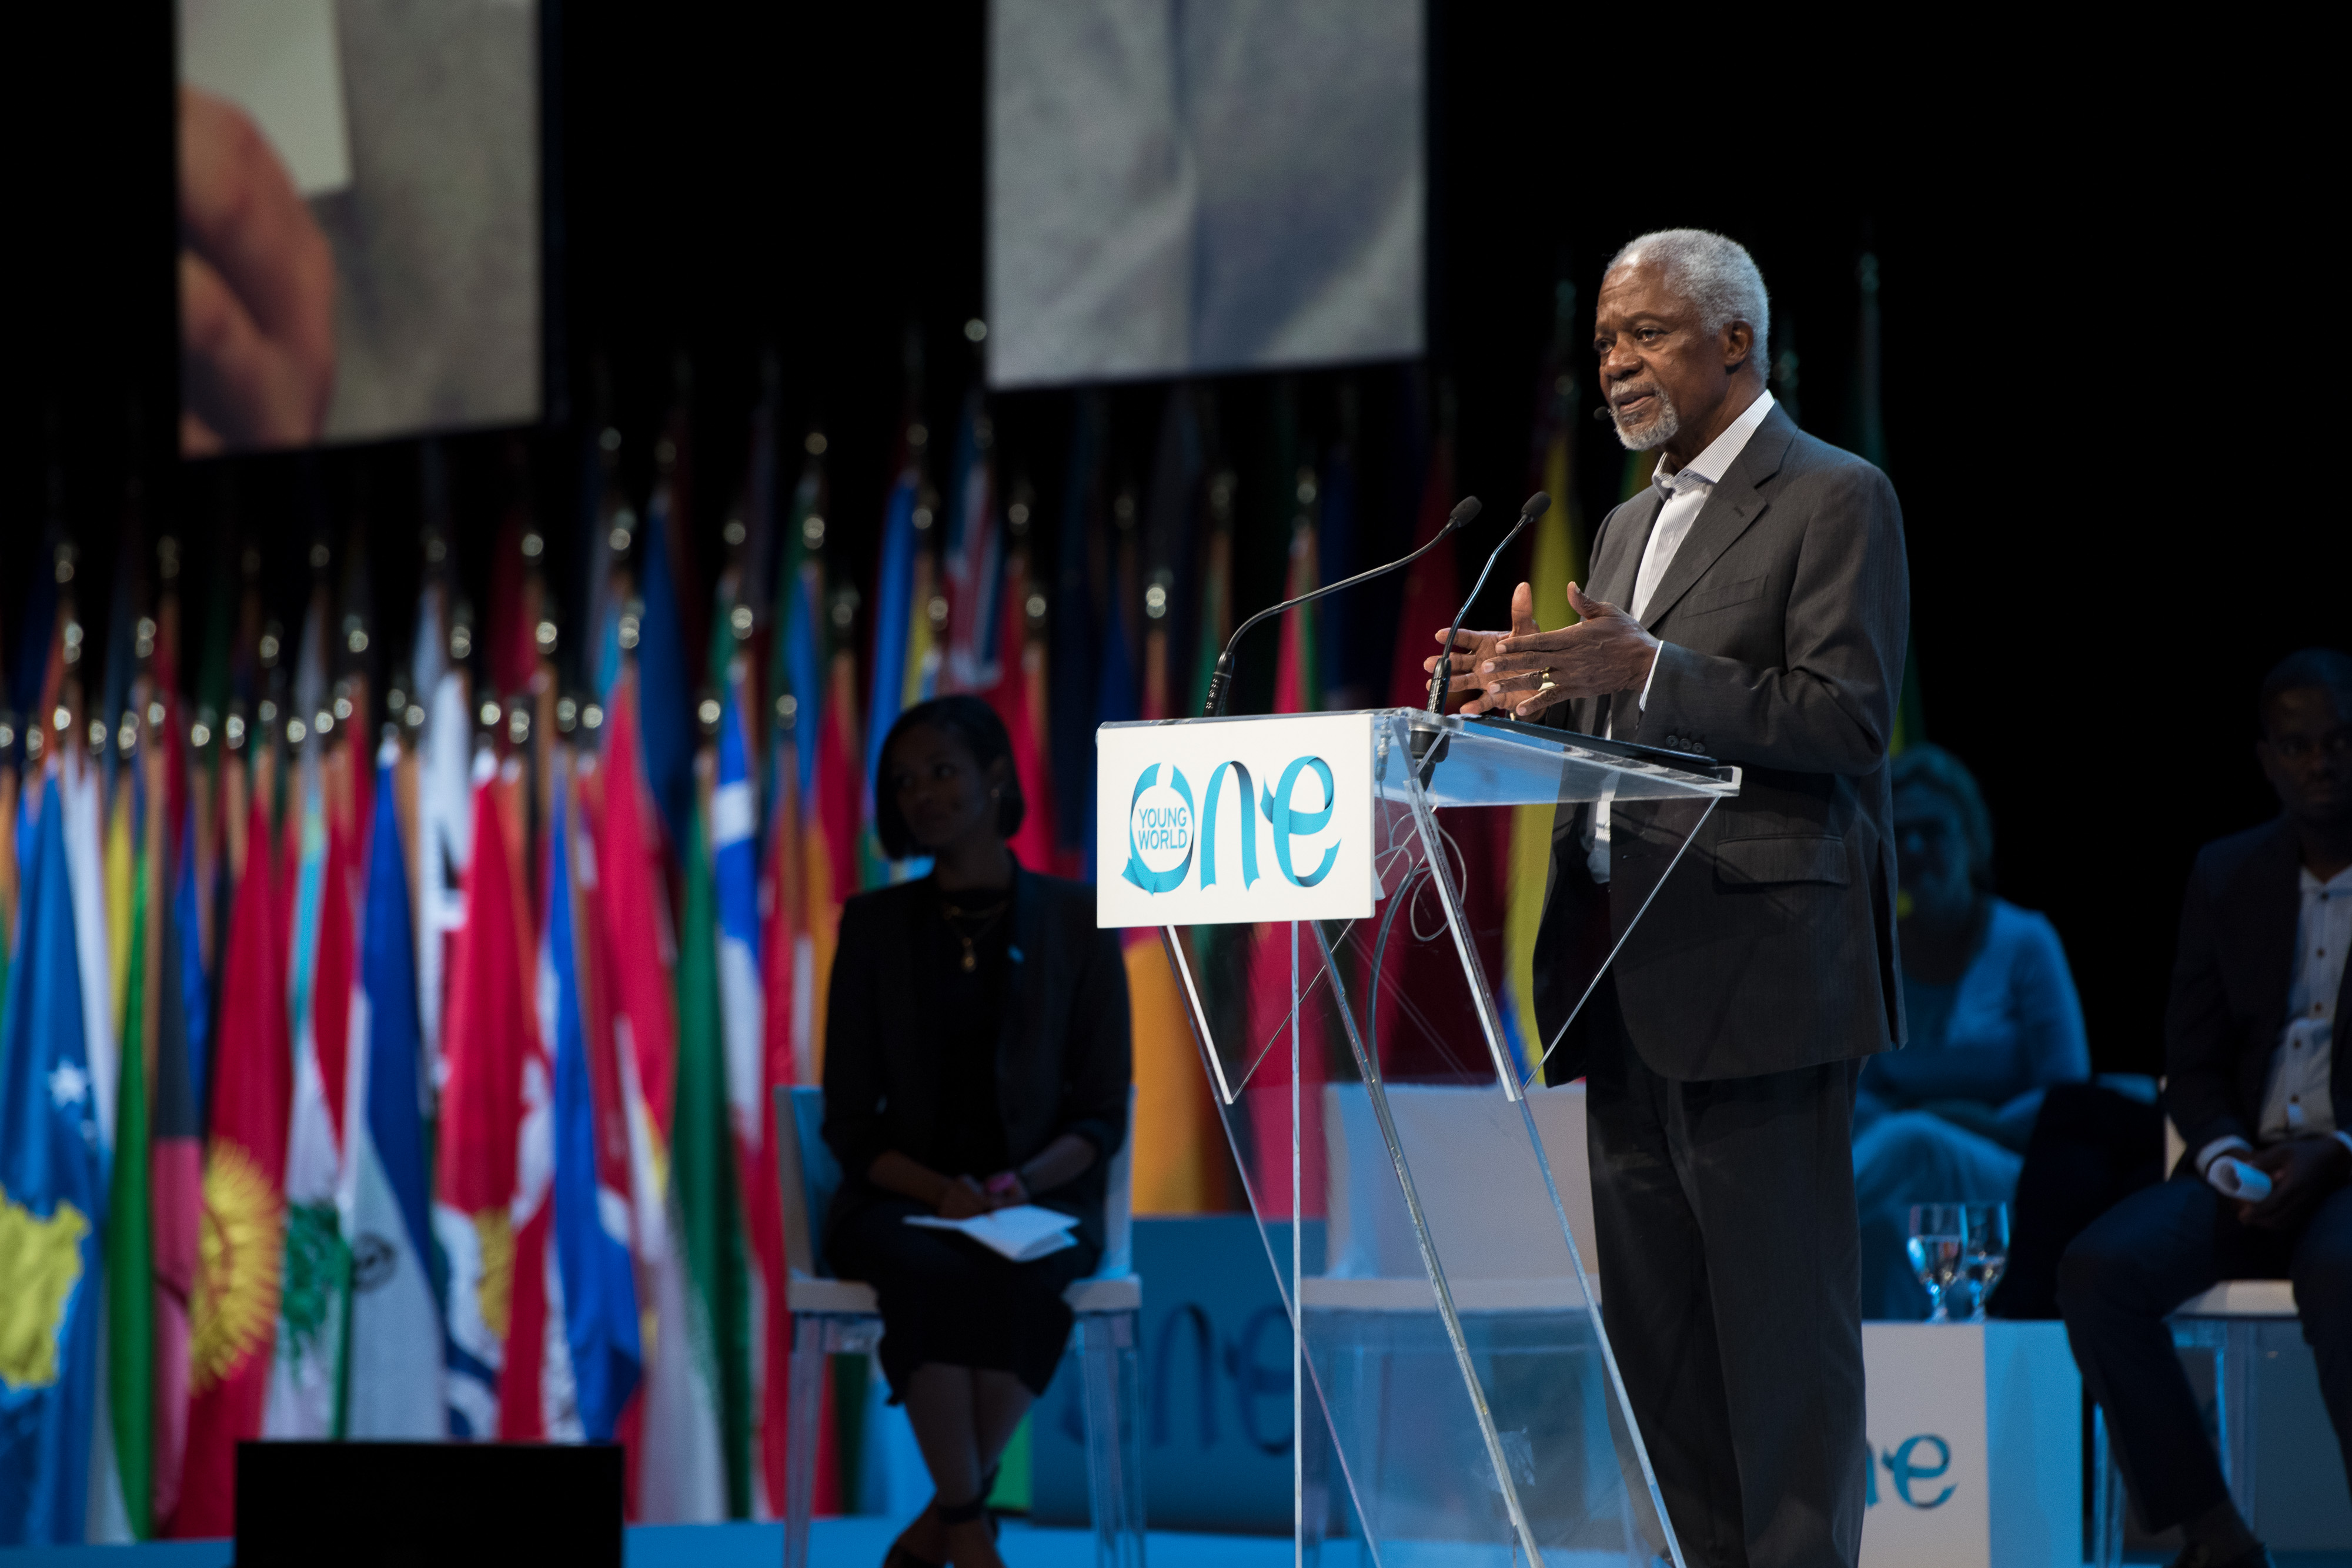 kofi annan, rip, united nations, un